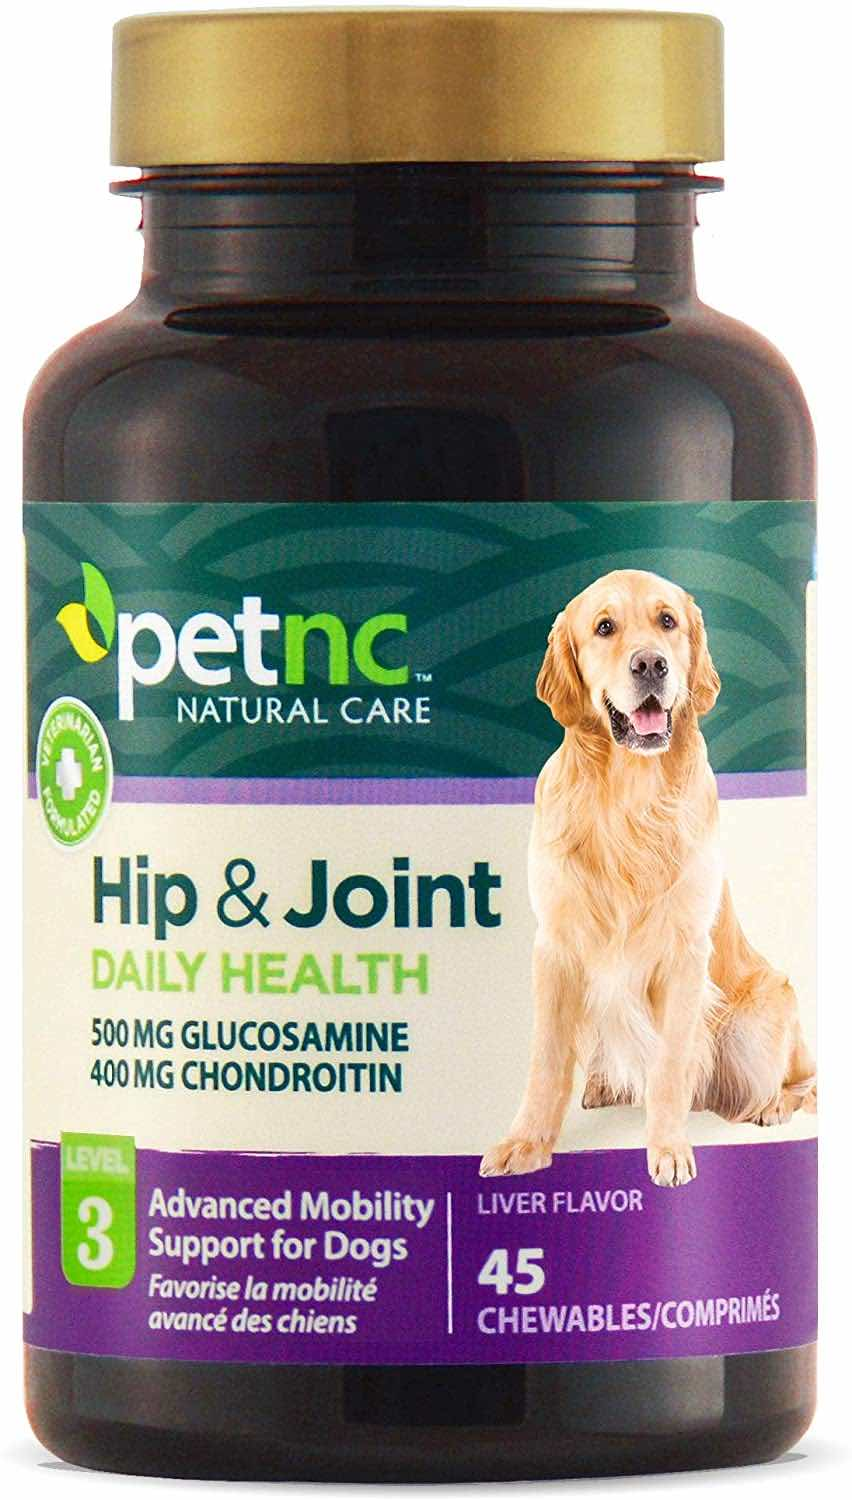 PetNC Hip & Joint Daily Health Level 3 Chewable Tablets 45 count 1